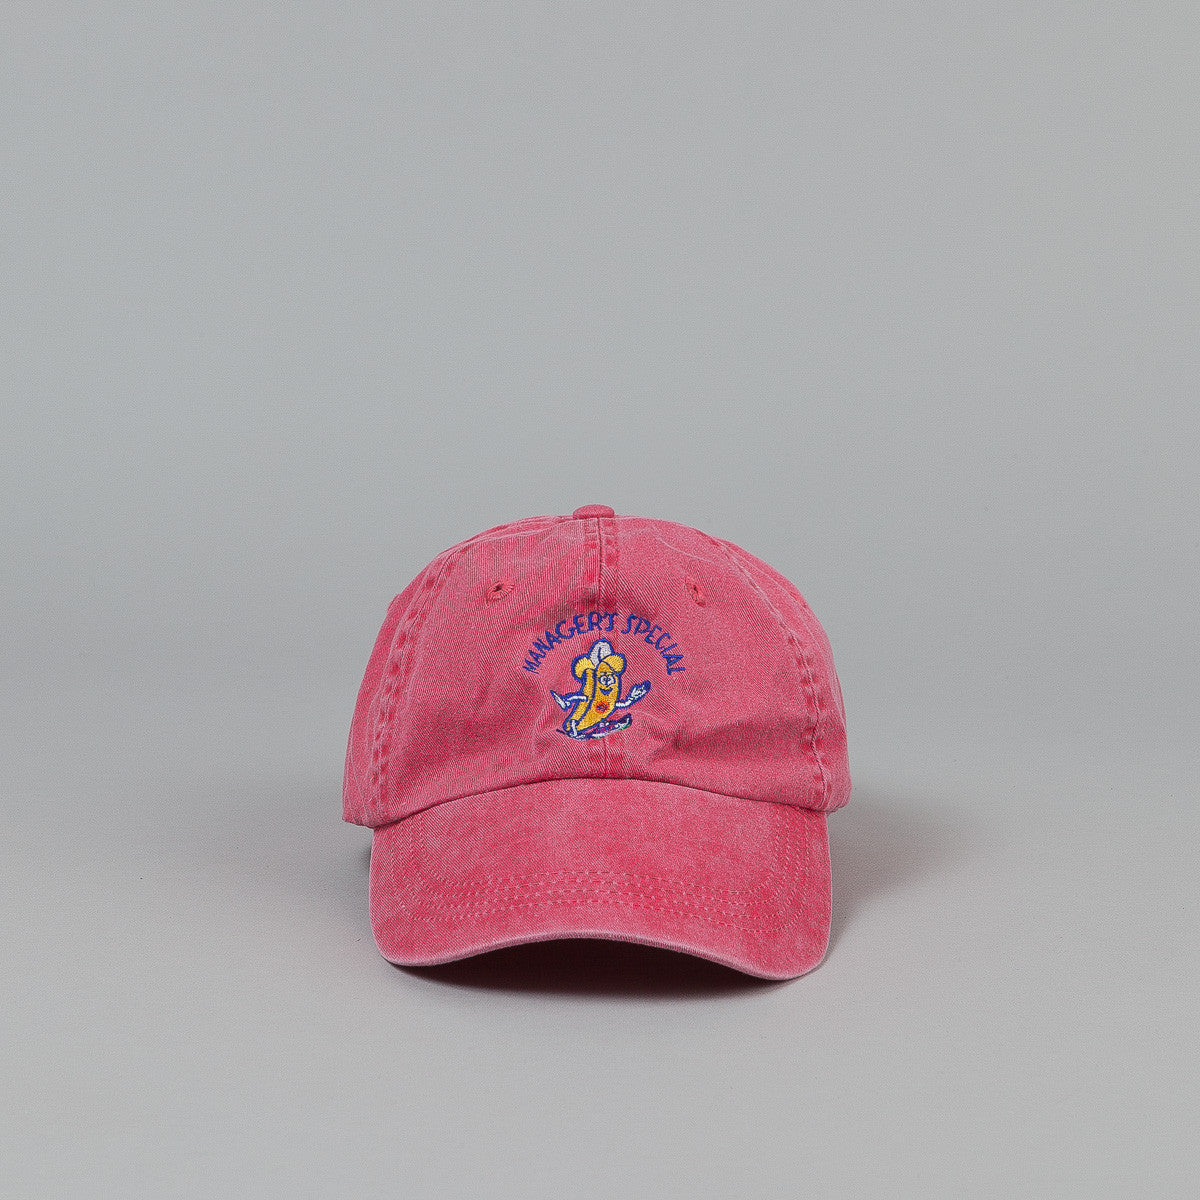 Manager's Special Bobby The Banana Dad Cap - Raspberry